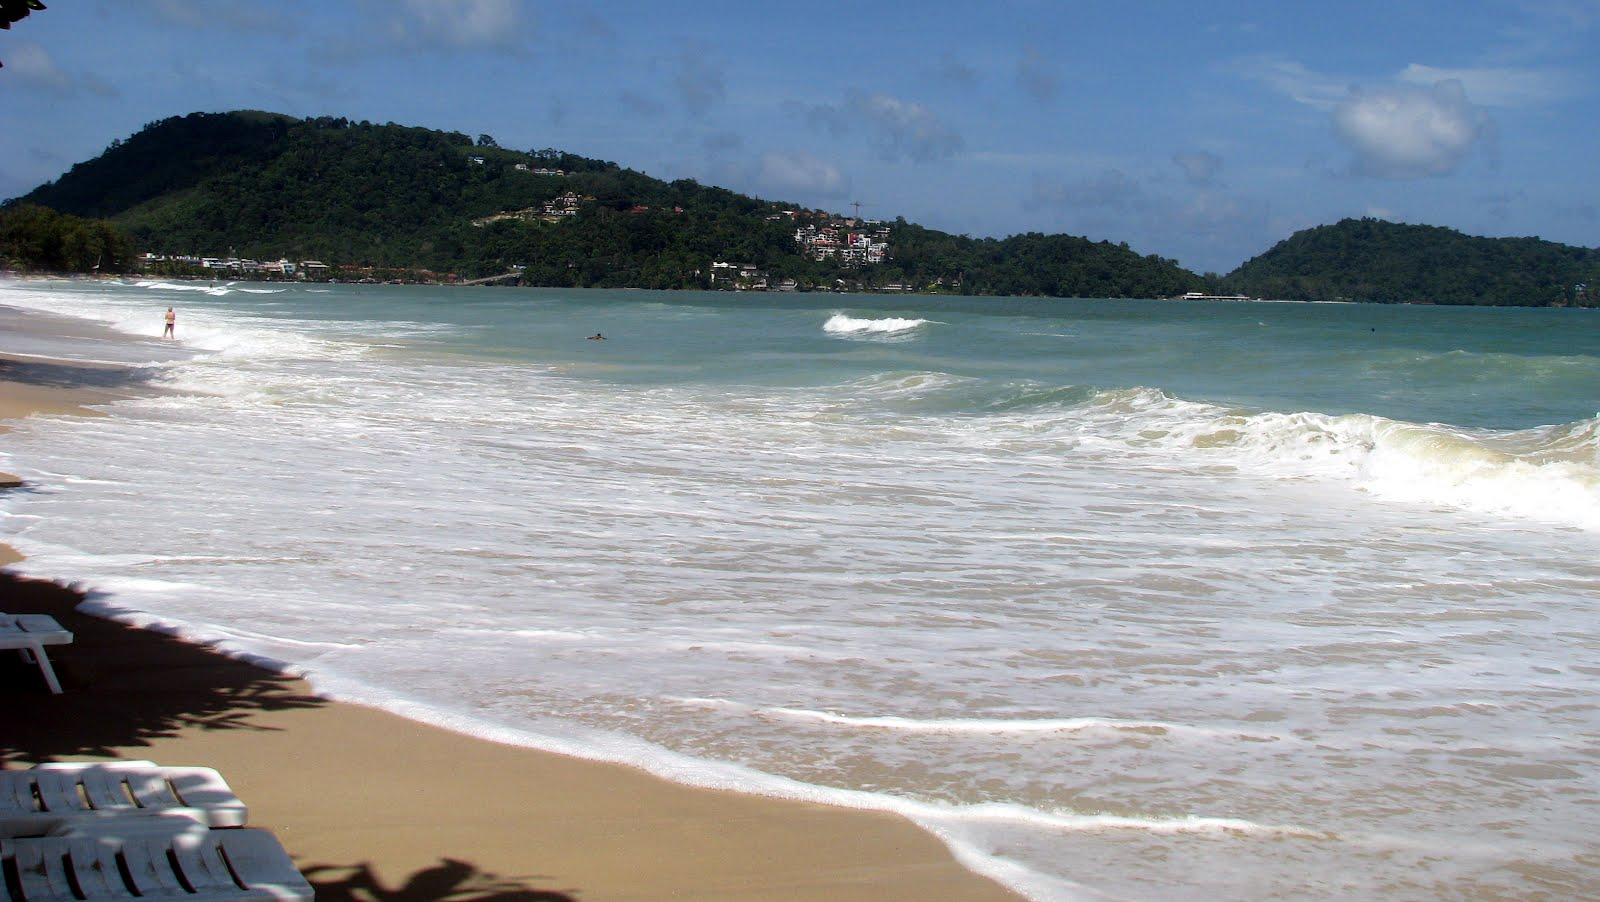 ... Beach was one of the worst affected areas of phuket when 2004 tsunami